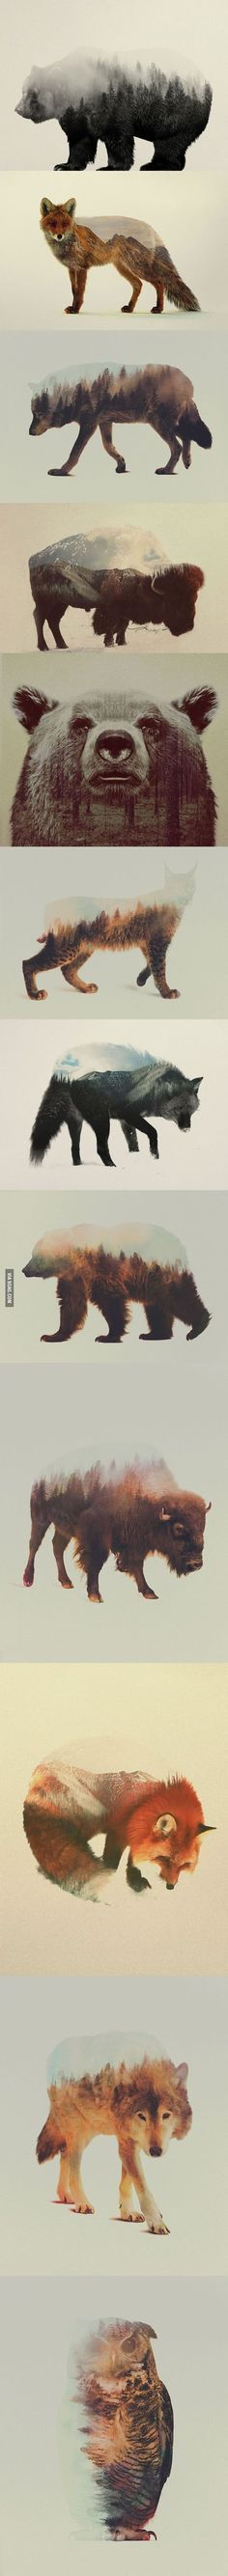 Double Exposure Portraits of Animals Reflecting Their Habitat by Andreas Lie.